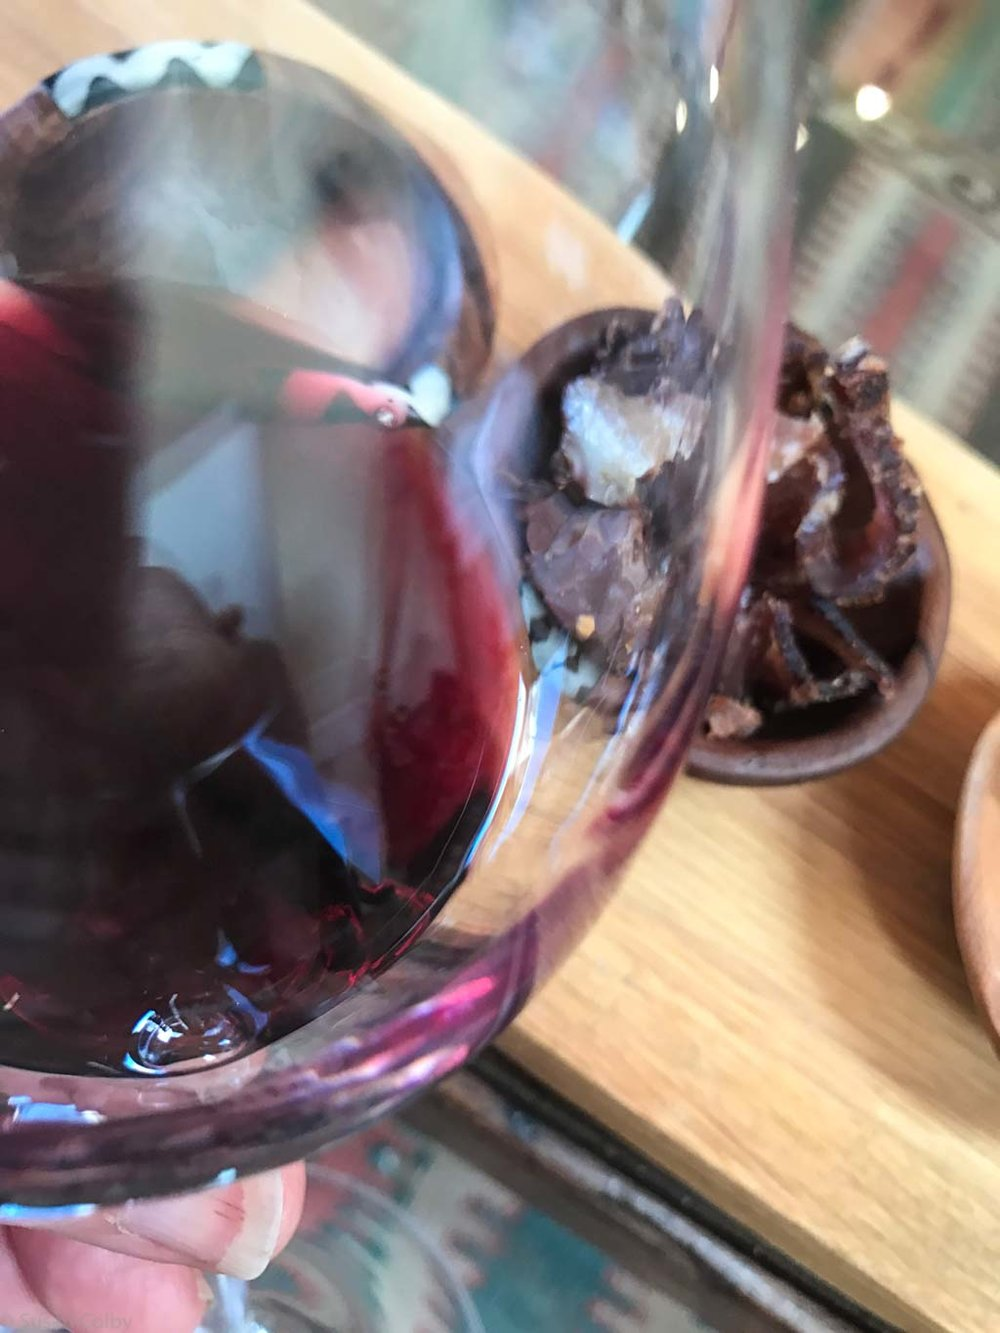 Biltong and wine - who'd've thought?